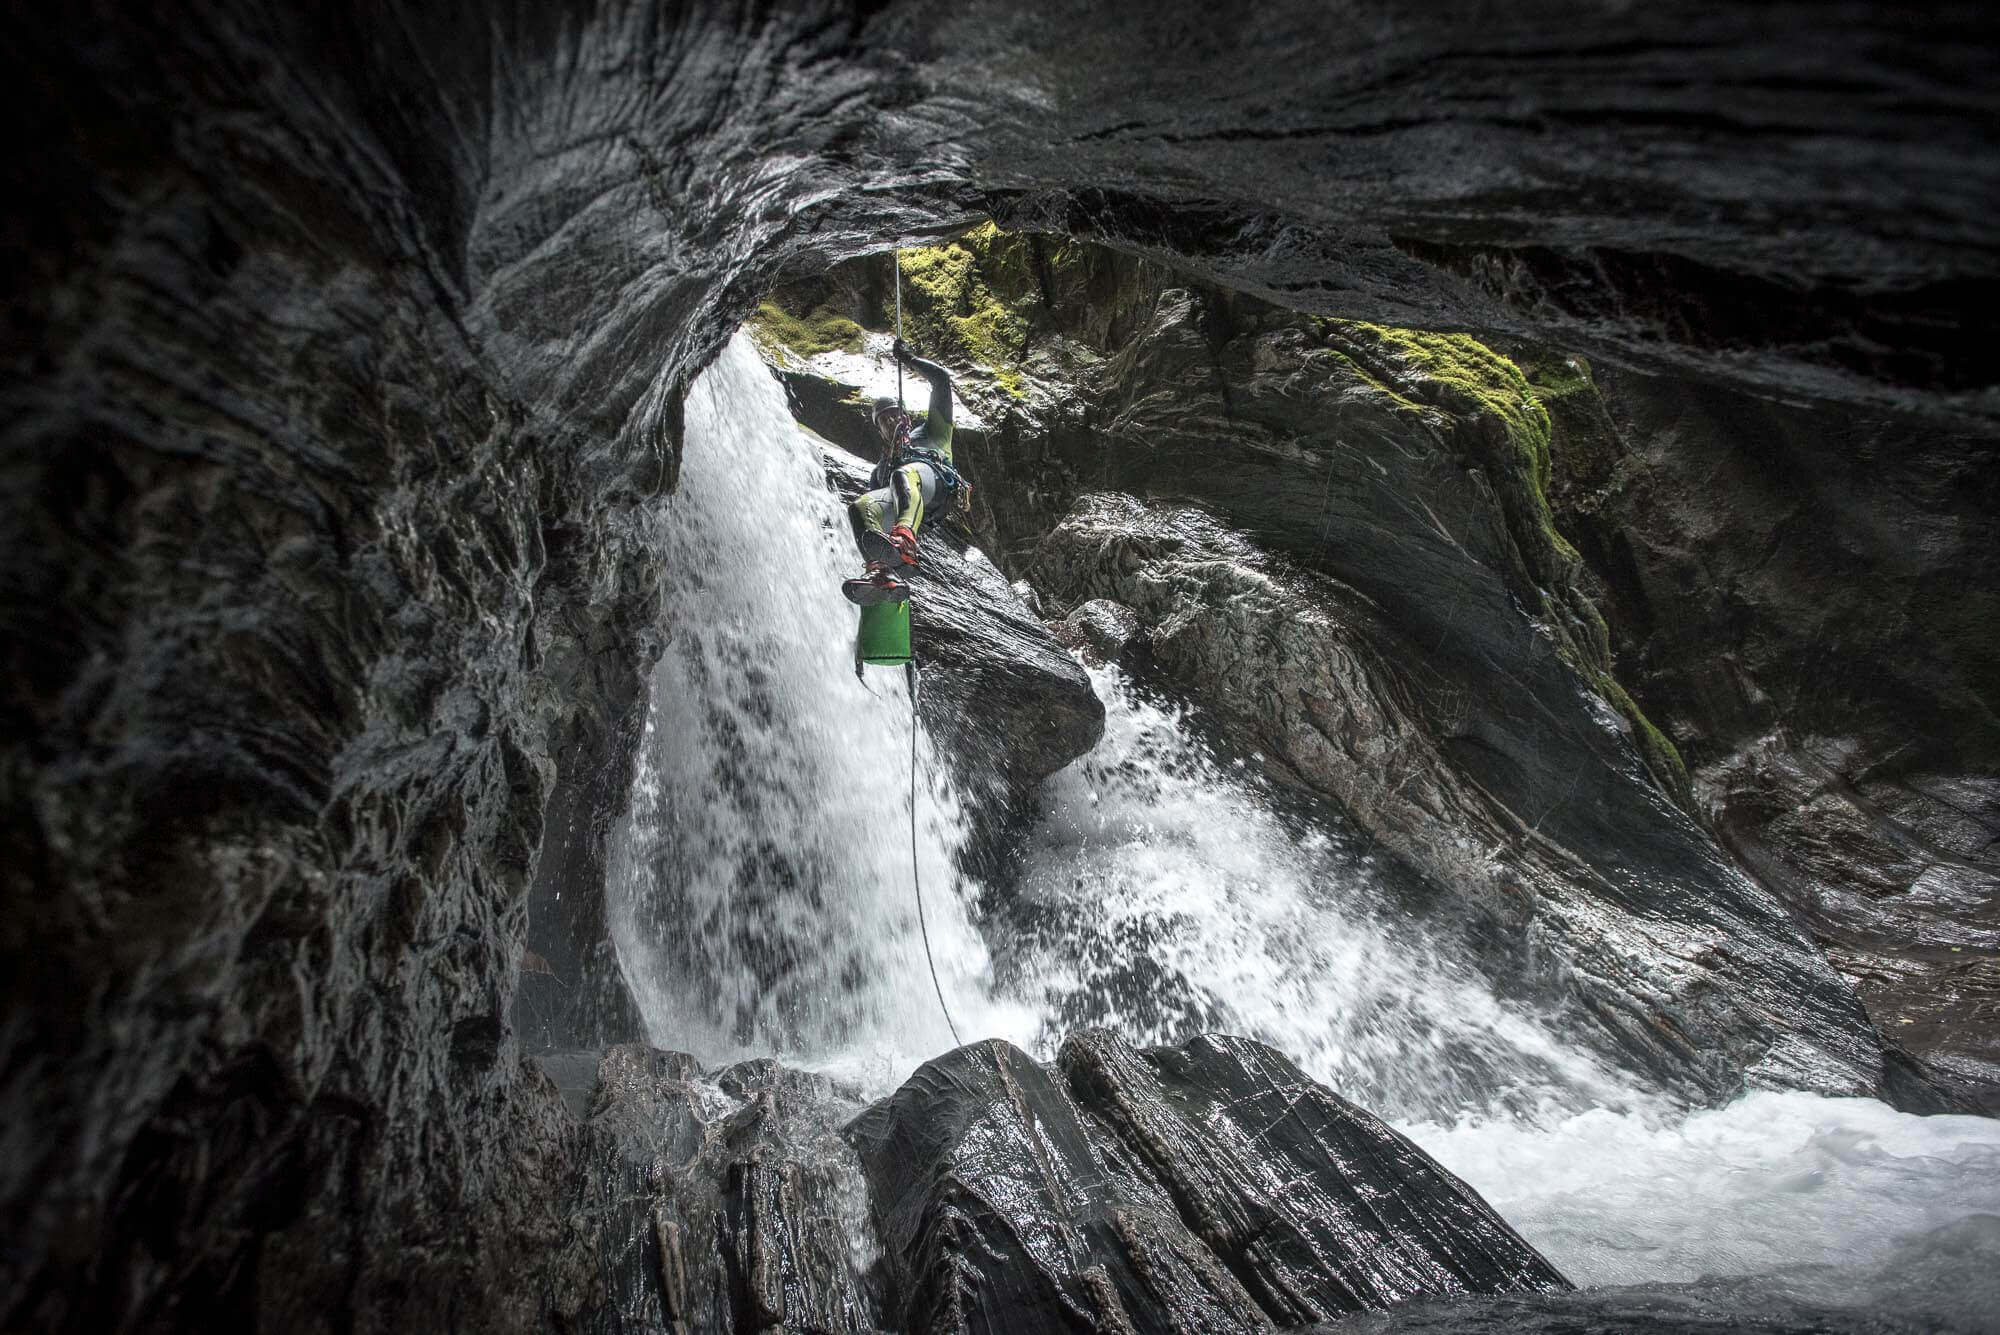 International canyoning training programs by V7 Academy allow you to learn canyoning online. Complete canyoning training courses from beginner to advanced. Pictured here is a person rappelling down a waterfall in a canyon in New Zealand; the person is hanging on a rope using a Seland wetsuit and Adidas Hydrolace shoes, and uses a canyoning descender to rappel down safely.